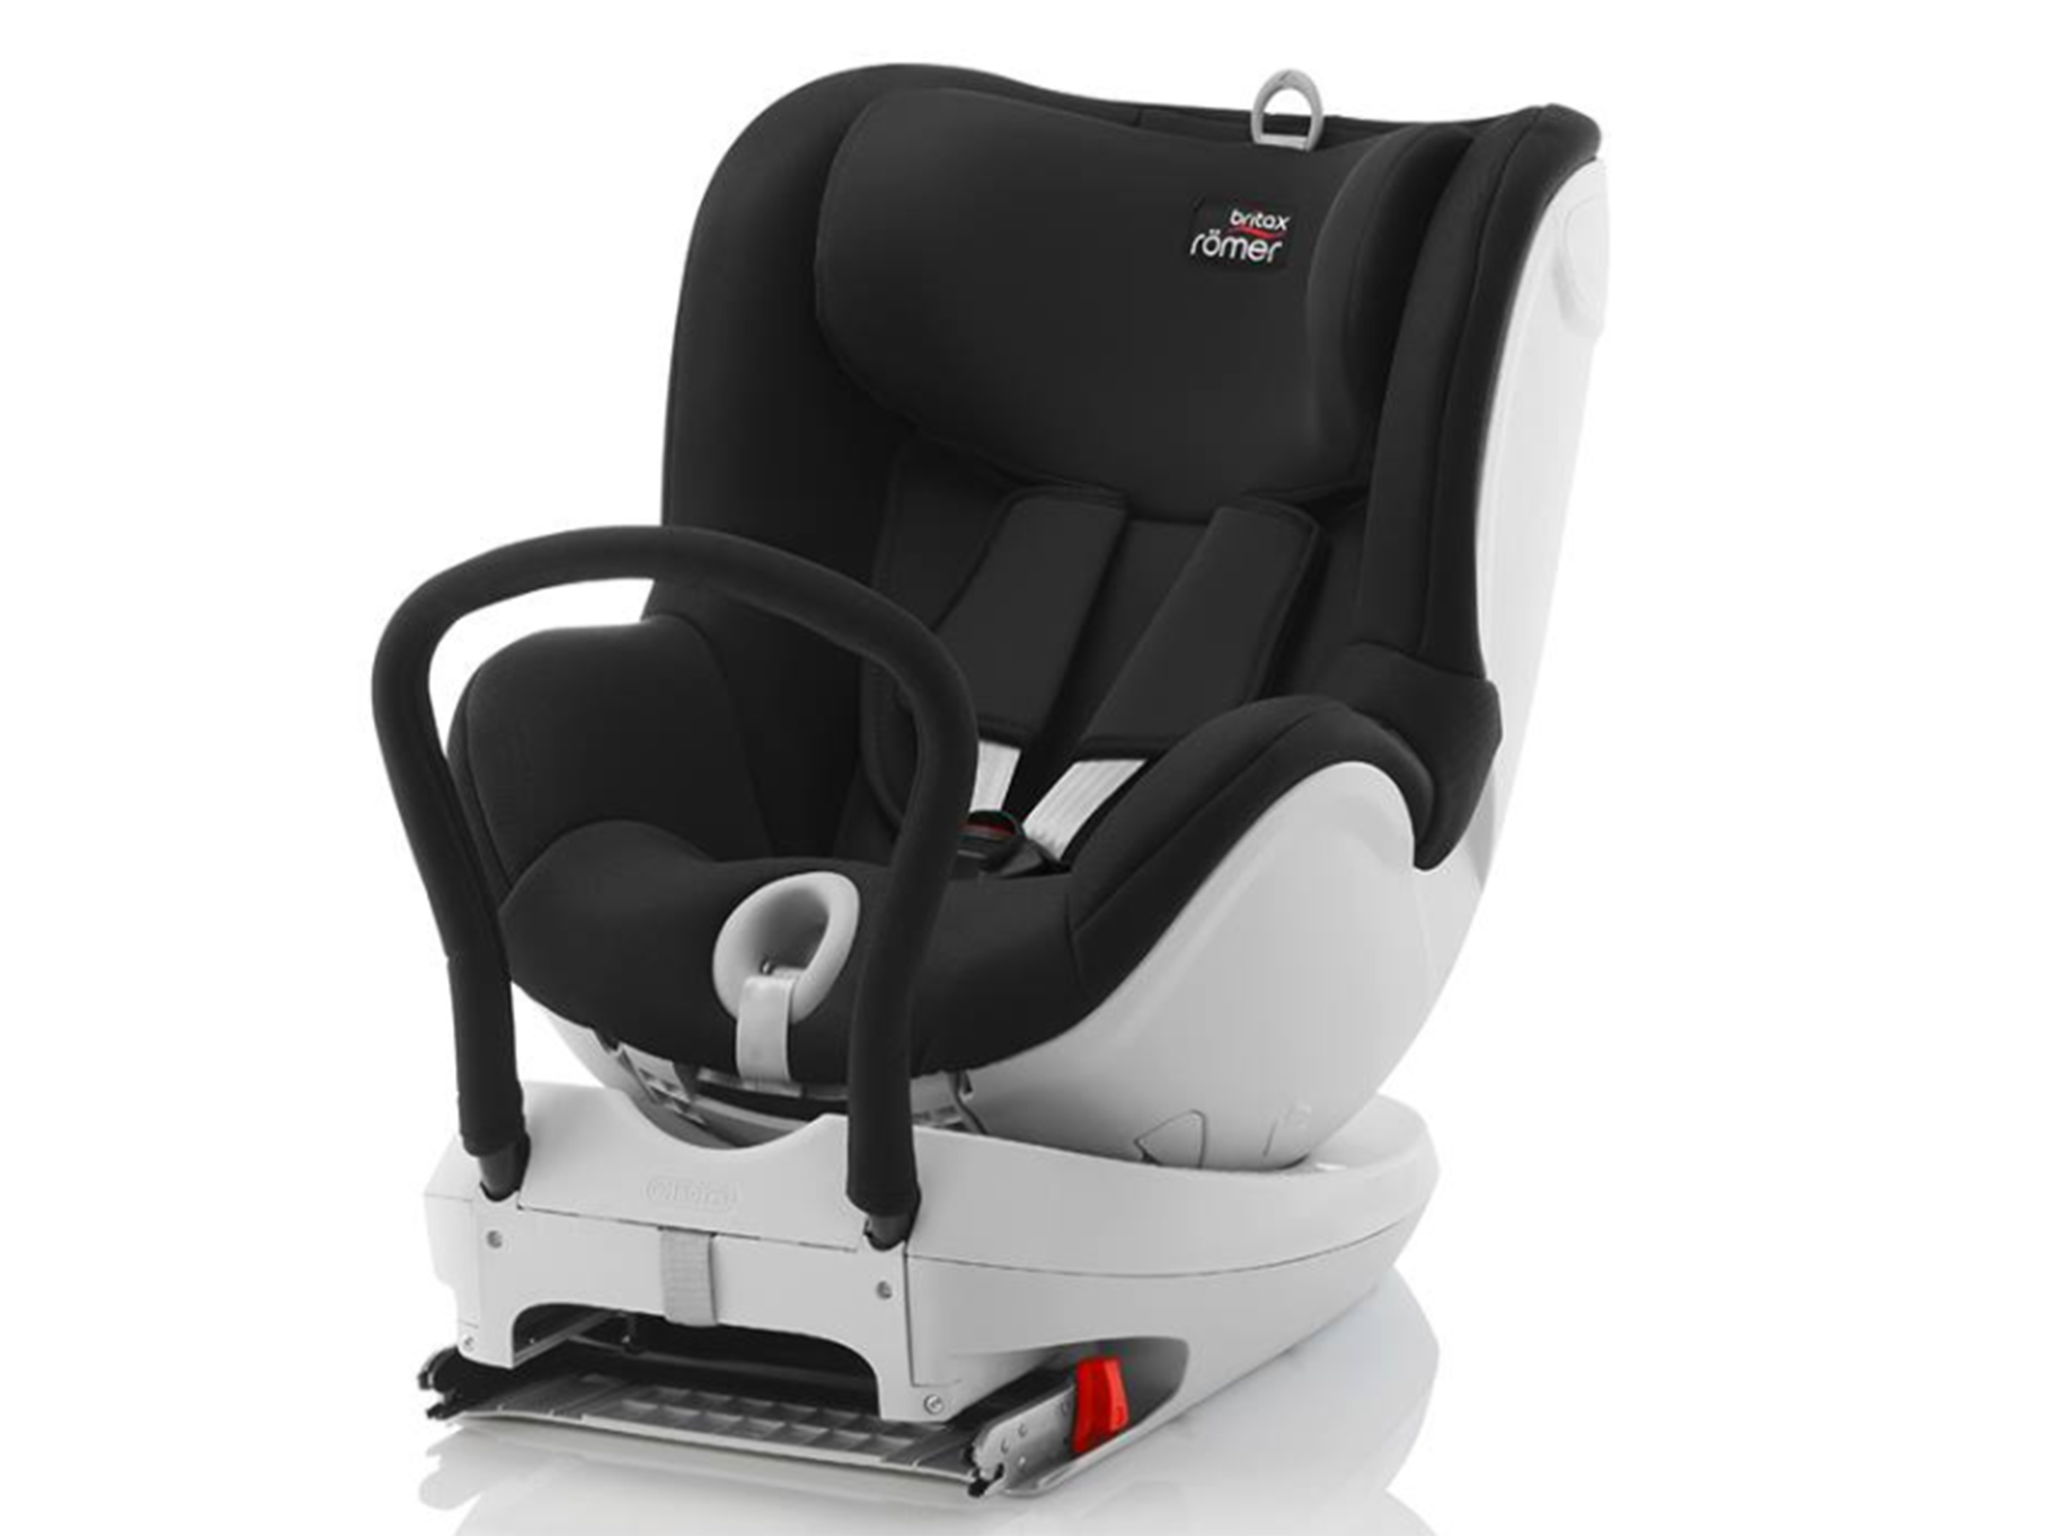 britax romer issues urgent baby car seats recall due to. Black Bedroom Furniture Sets. Home Design Ideas